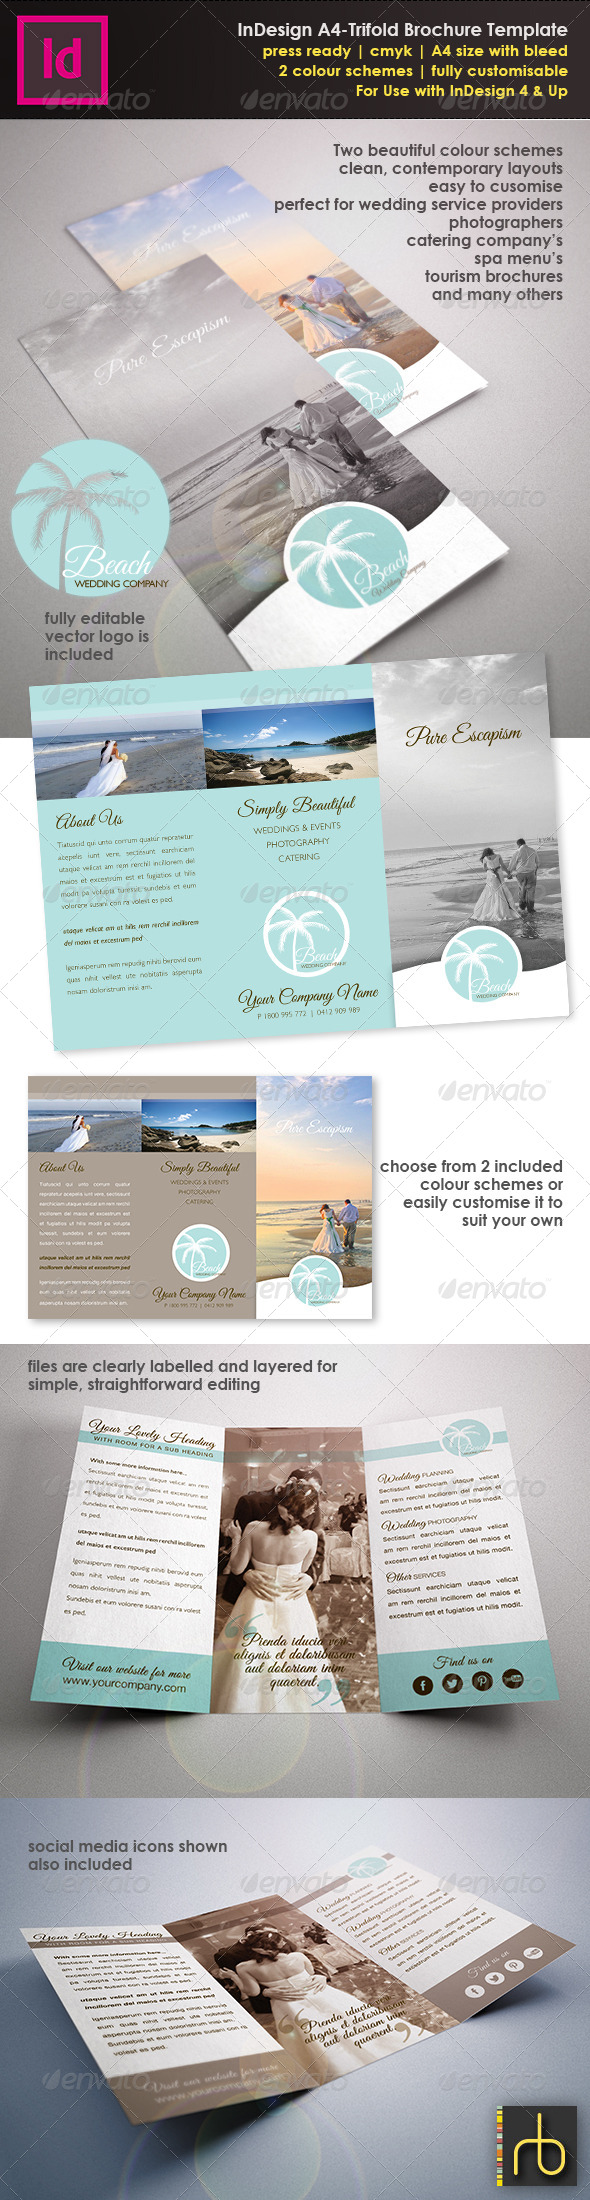 GraphicRiver InDesign A4 Trifold Brochure Template 4836202